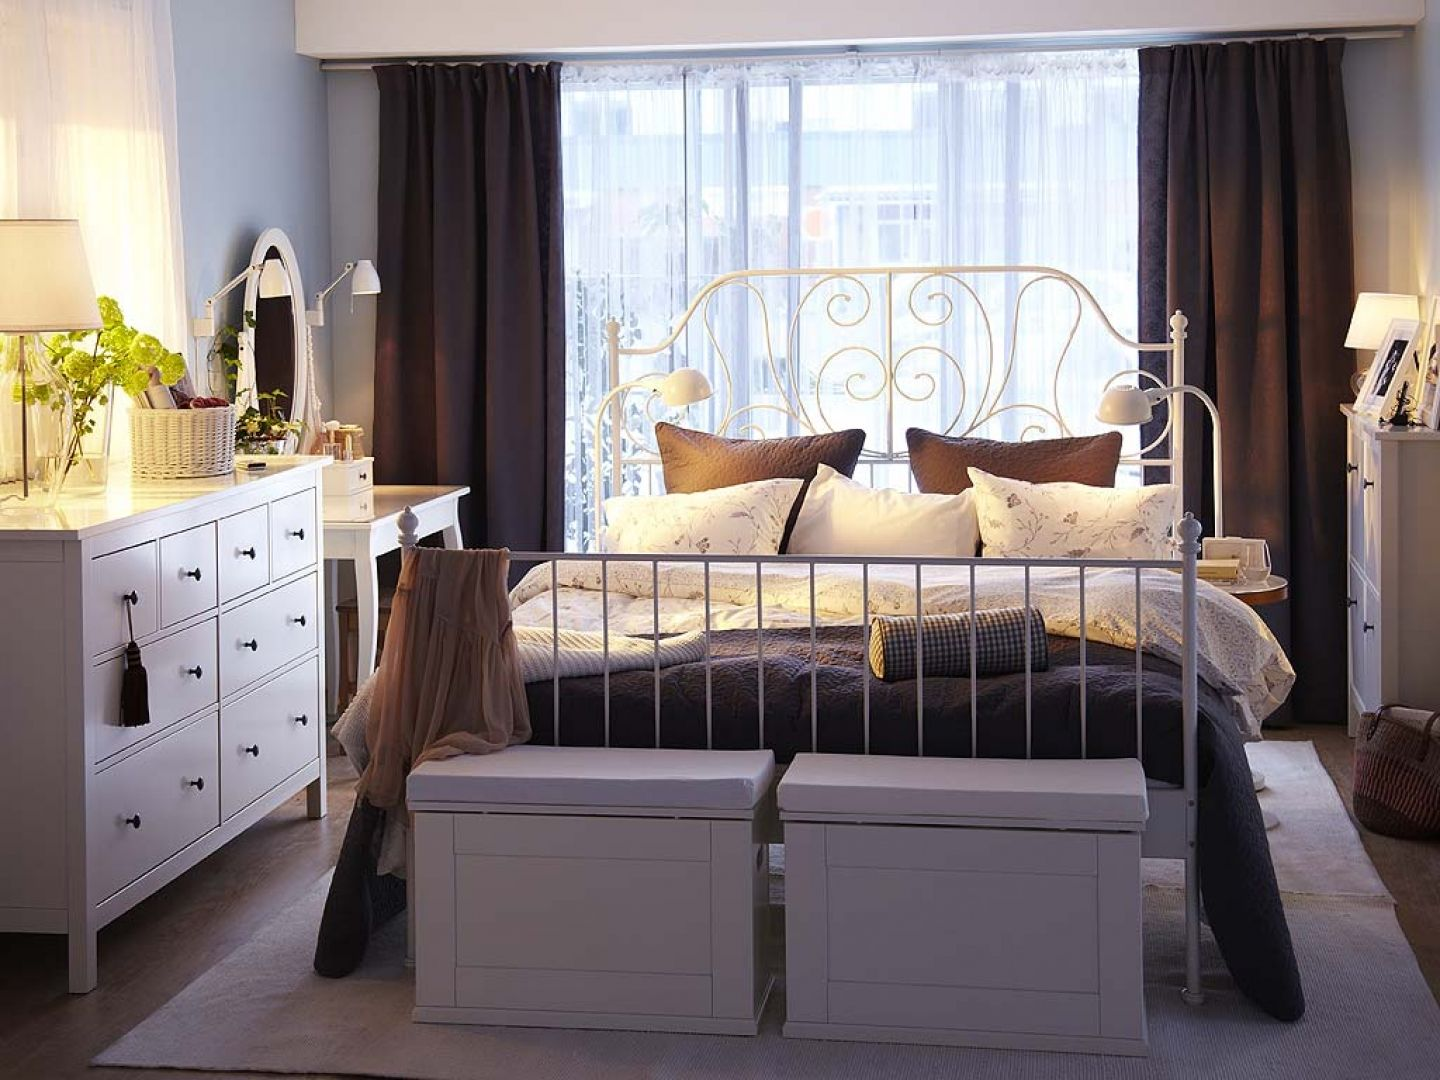 Ikea Bedroom Idea Inspired Design 10 On Home Architecture Design